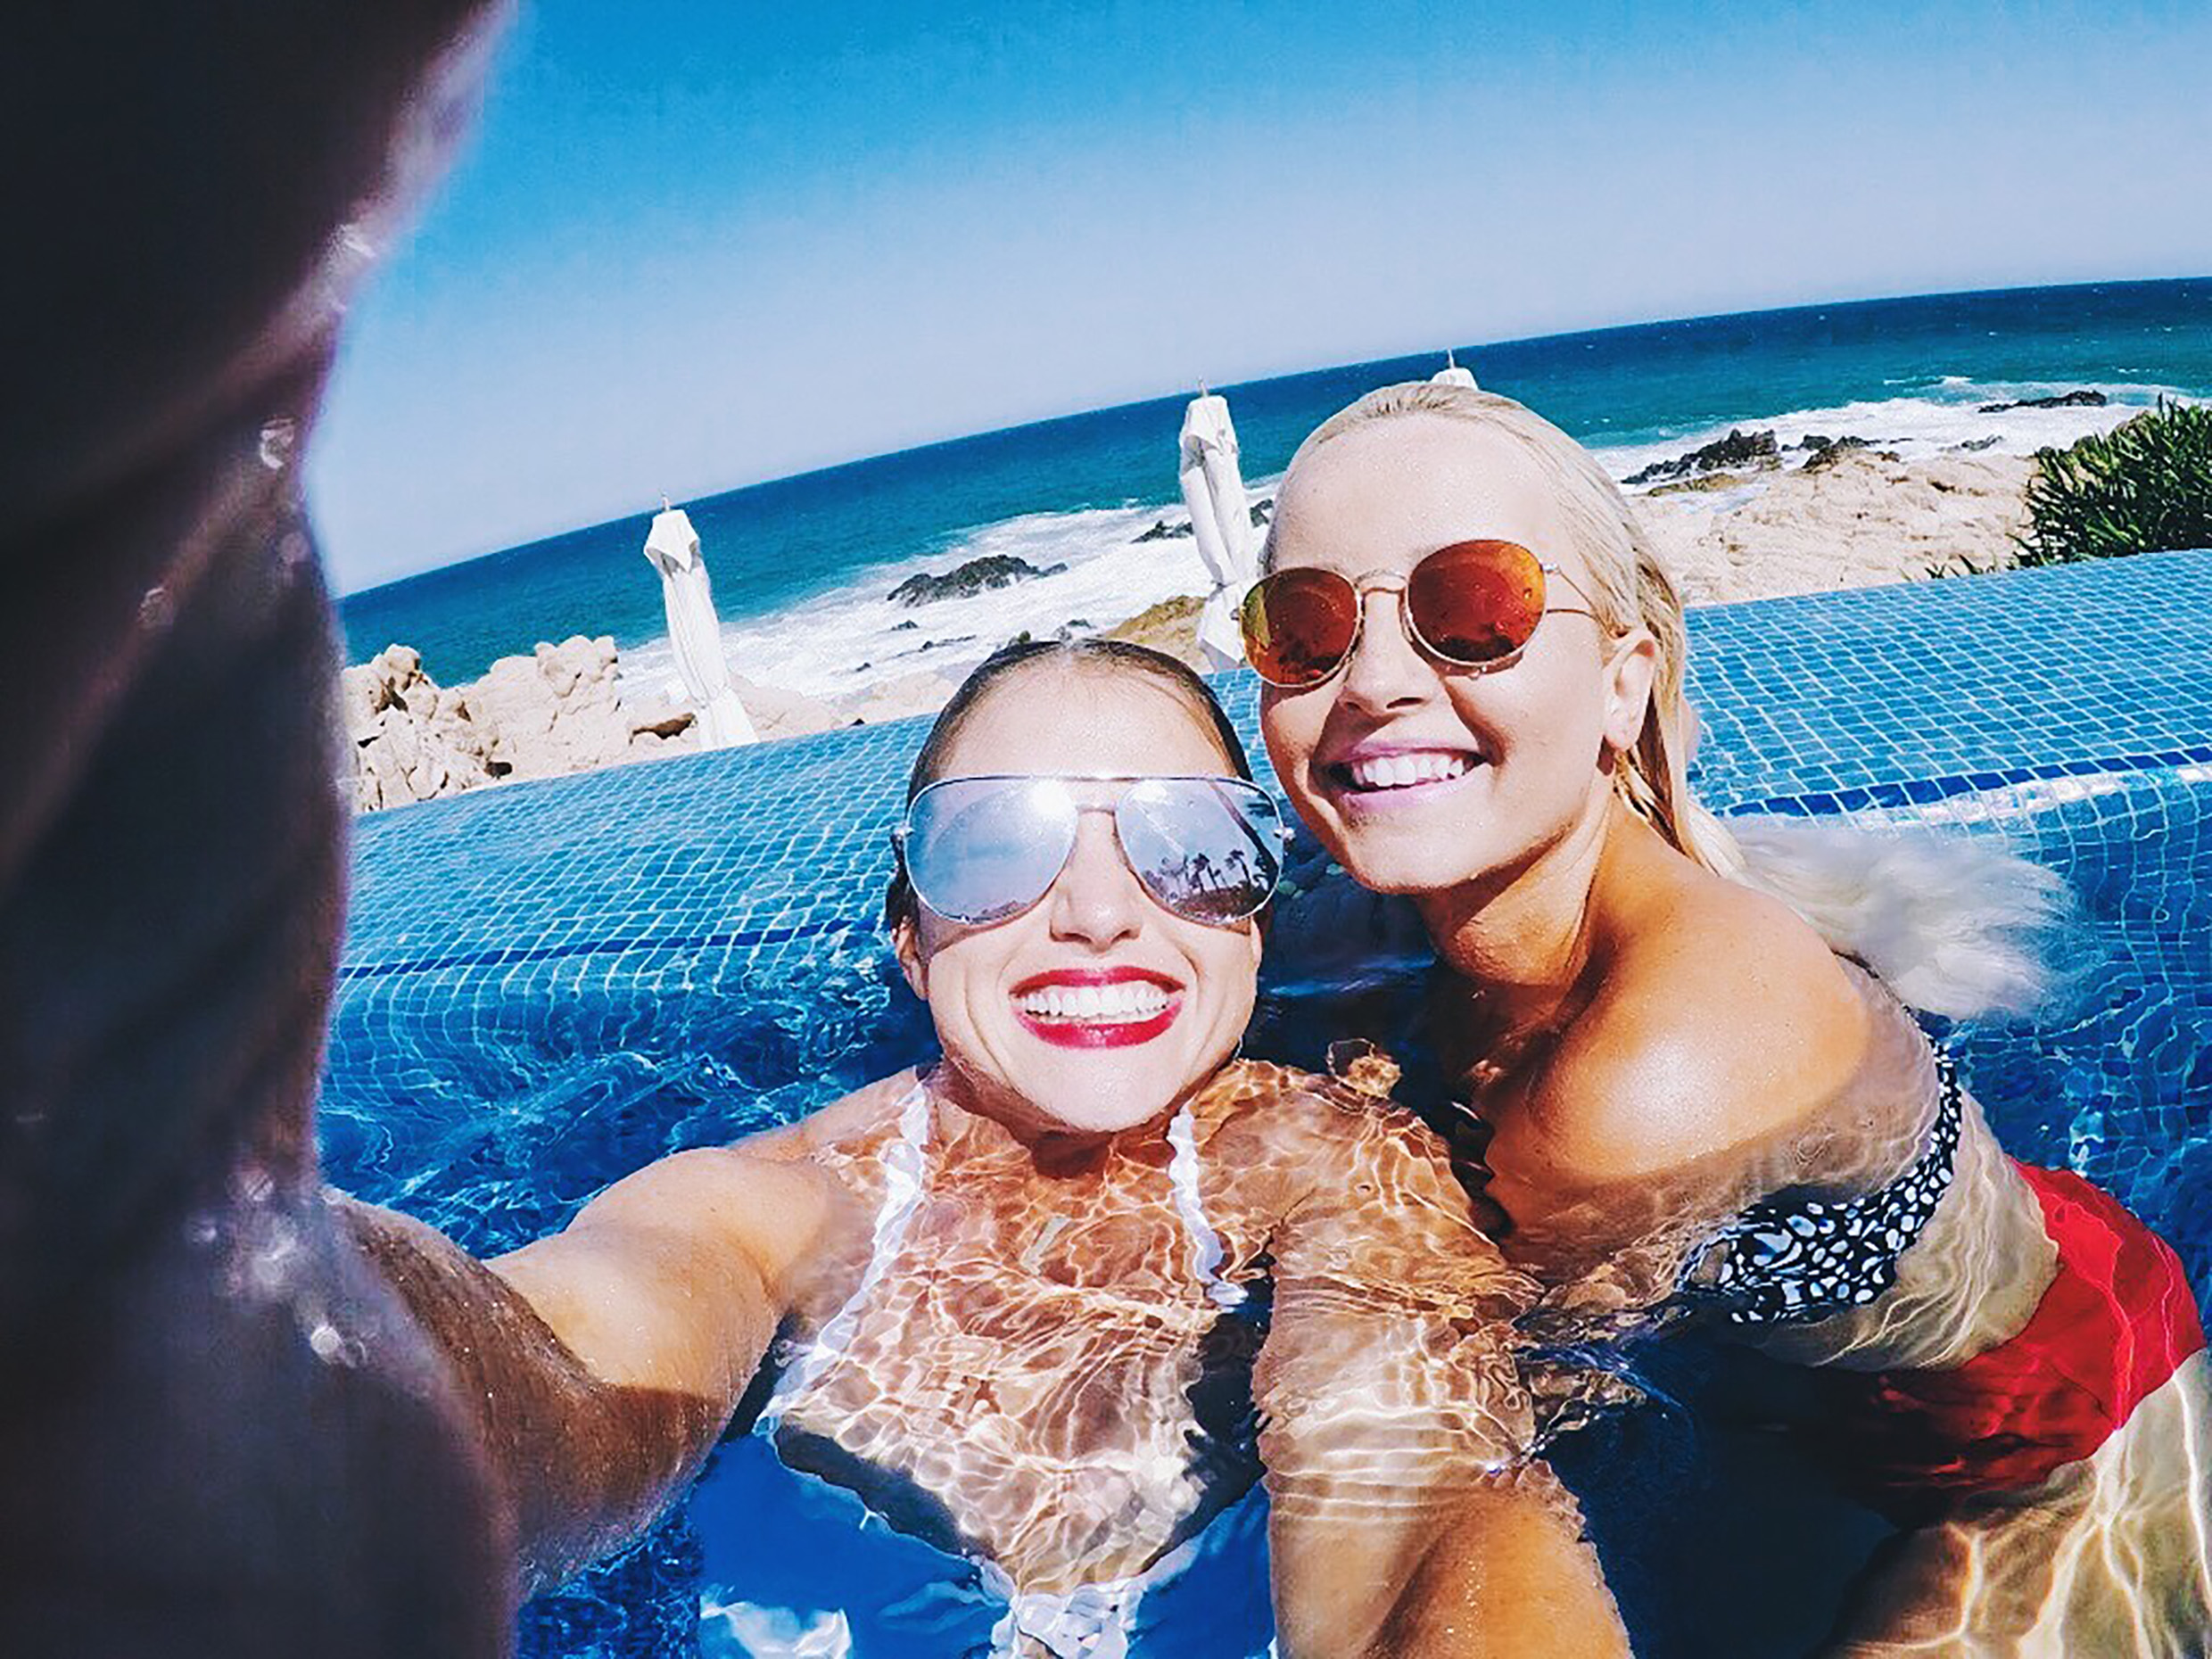 A VLOG OF OUR GIRLS TRIP TO CABO